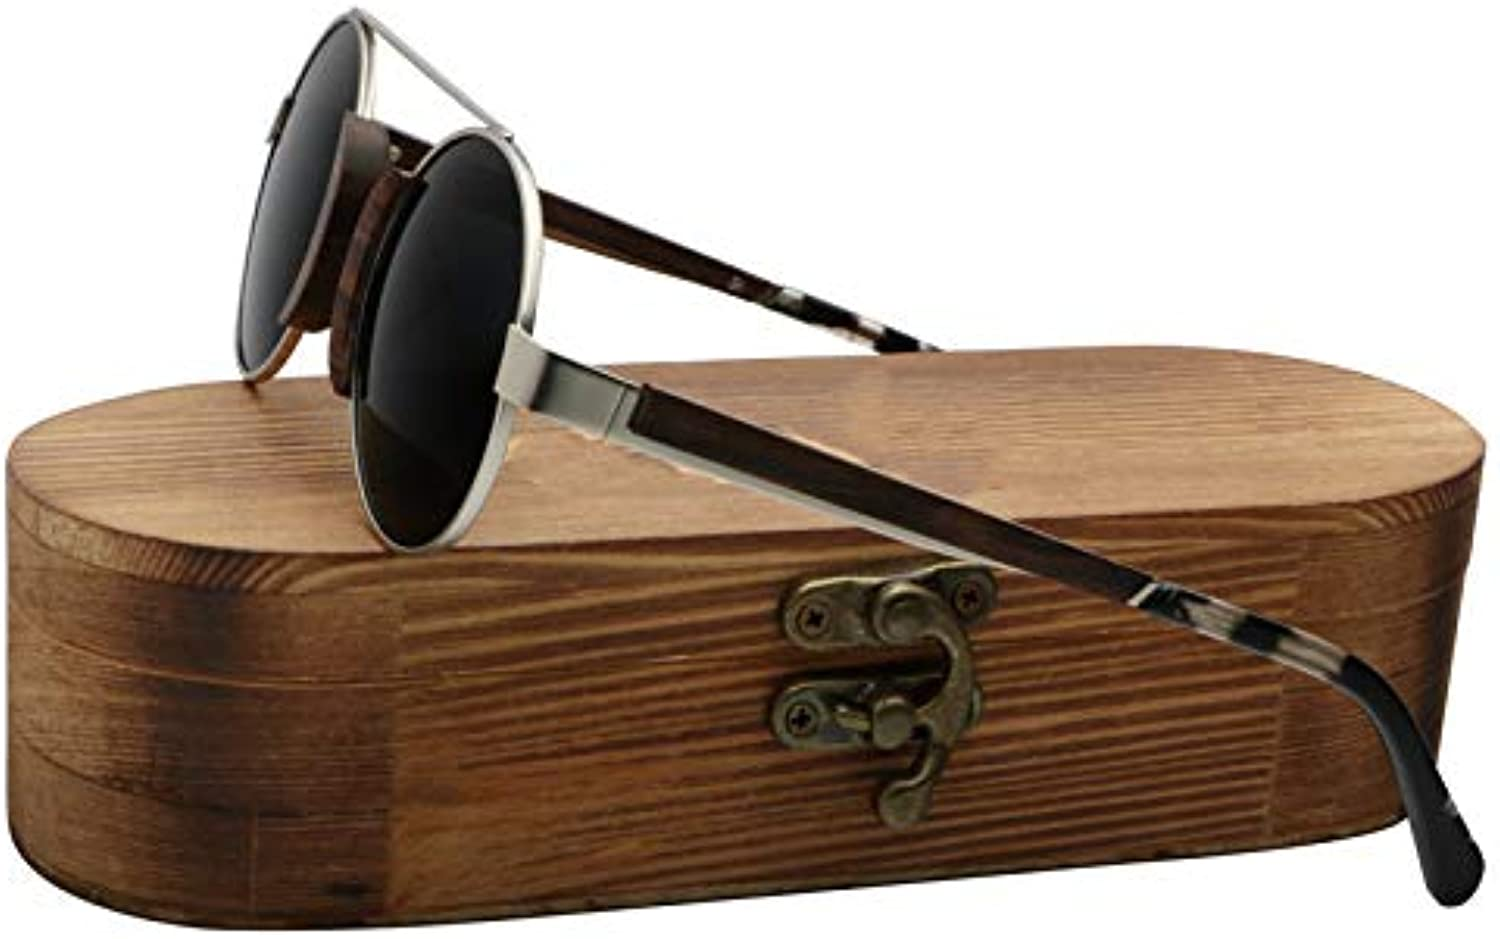 DABAOYA Ladies Wood Sunglasses Women Polarized Small Size Funny Unique Bamboo Wooden Shade for Women in Vintage Wood Box